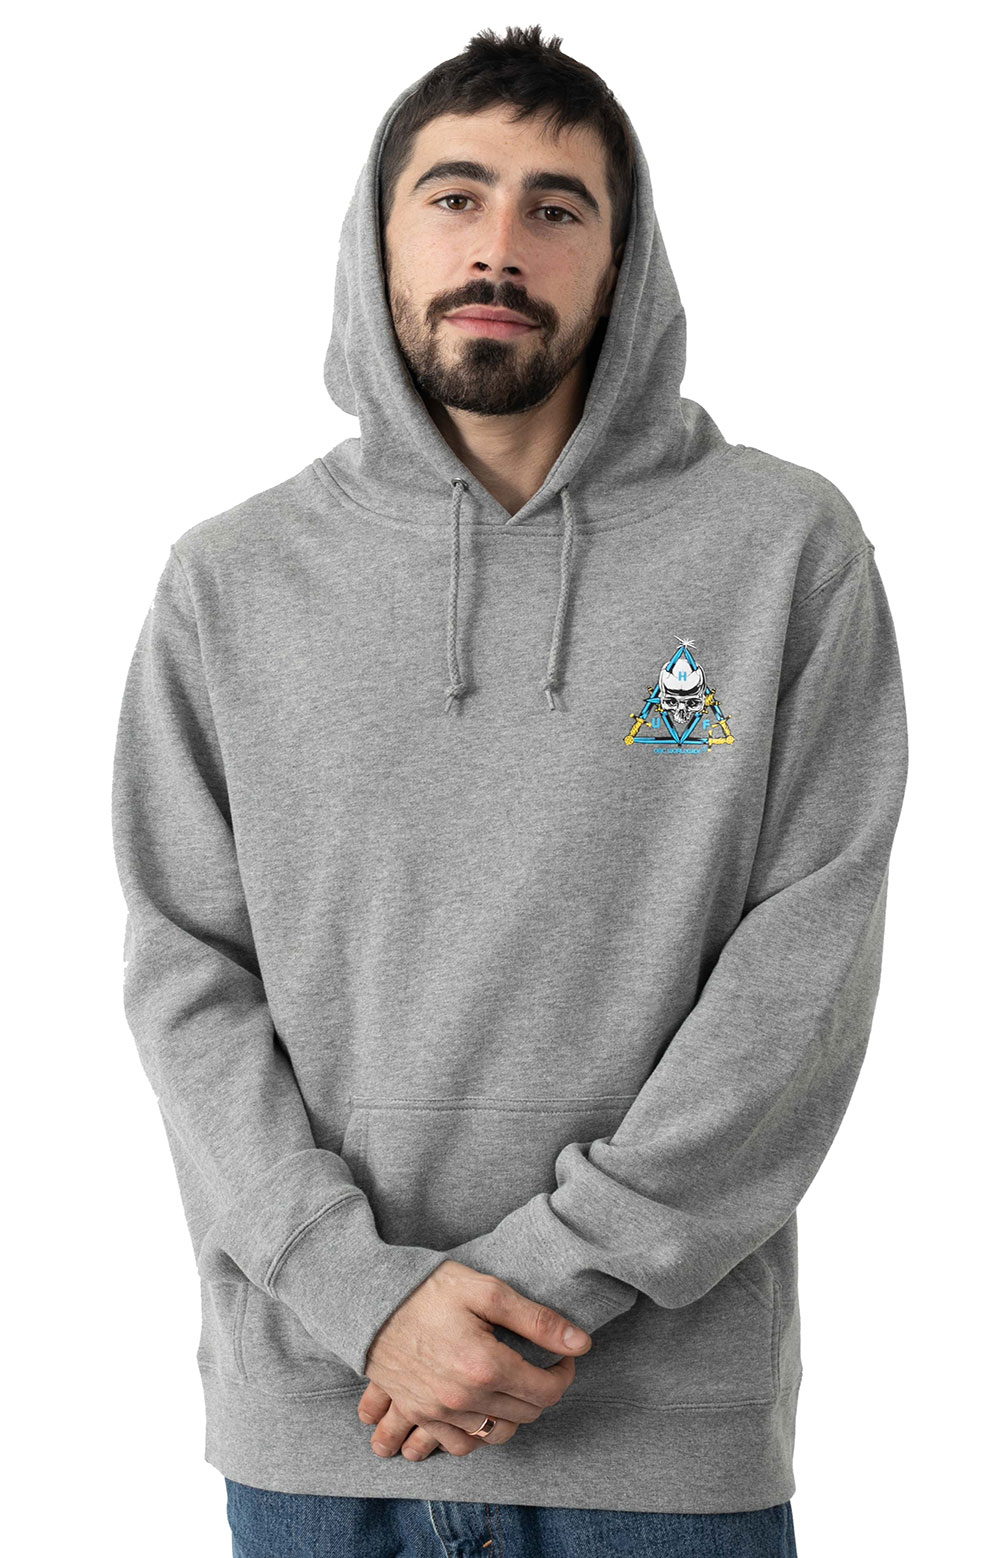 Blvd TT Pullover Hoodie - Grey Heather  2